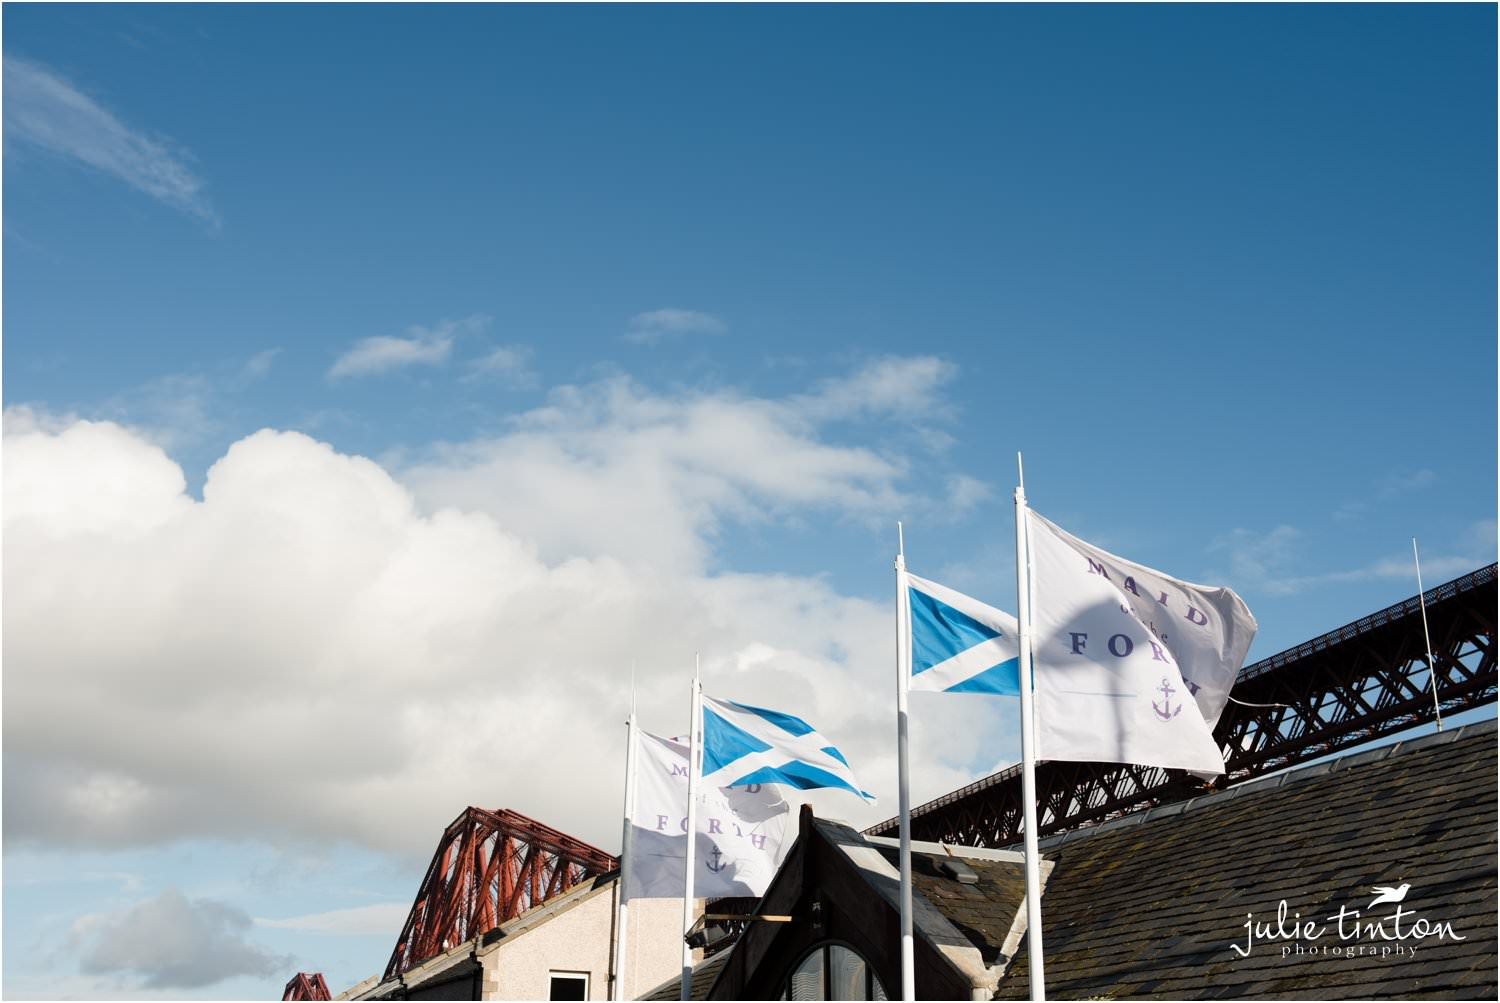 Maid of Forth flags at South Queensferry Scotland